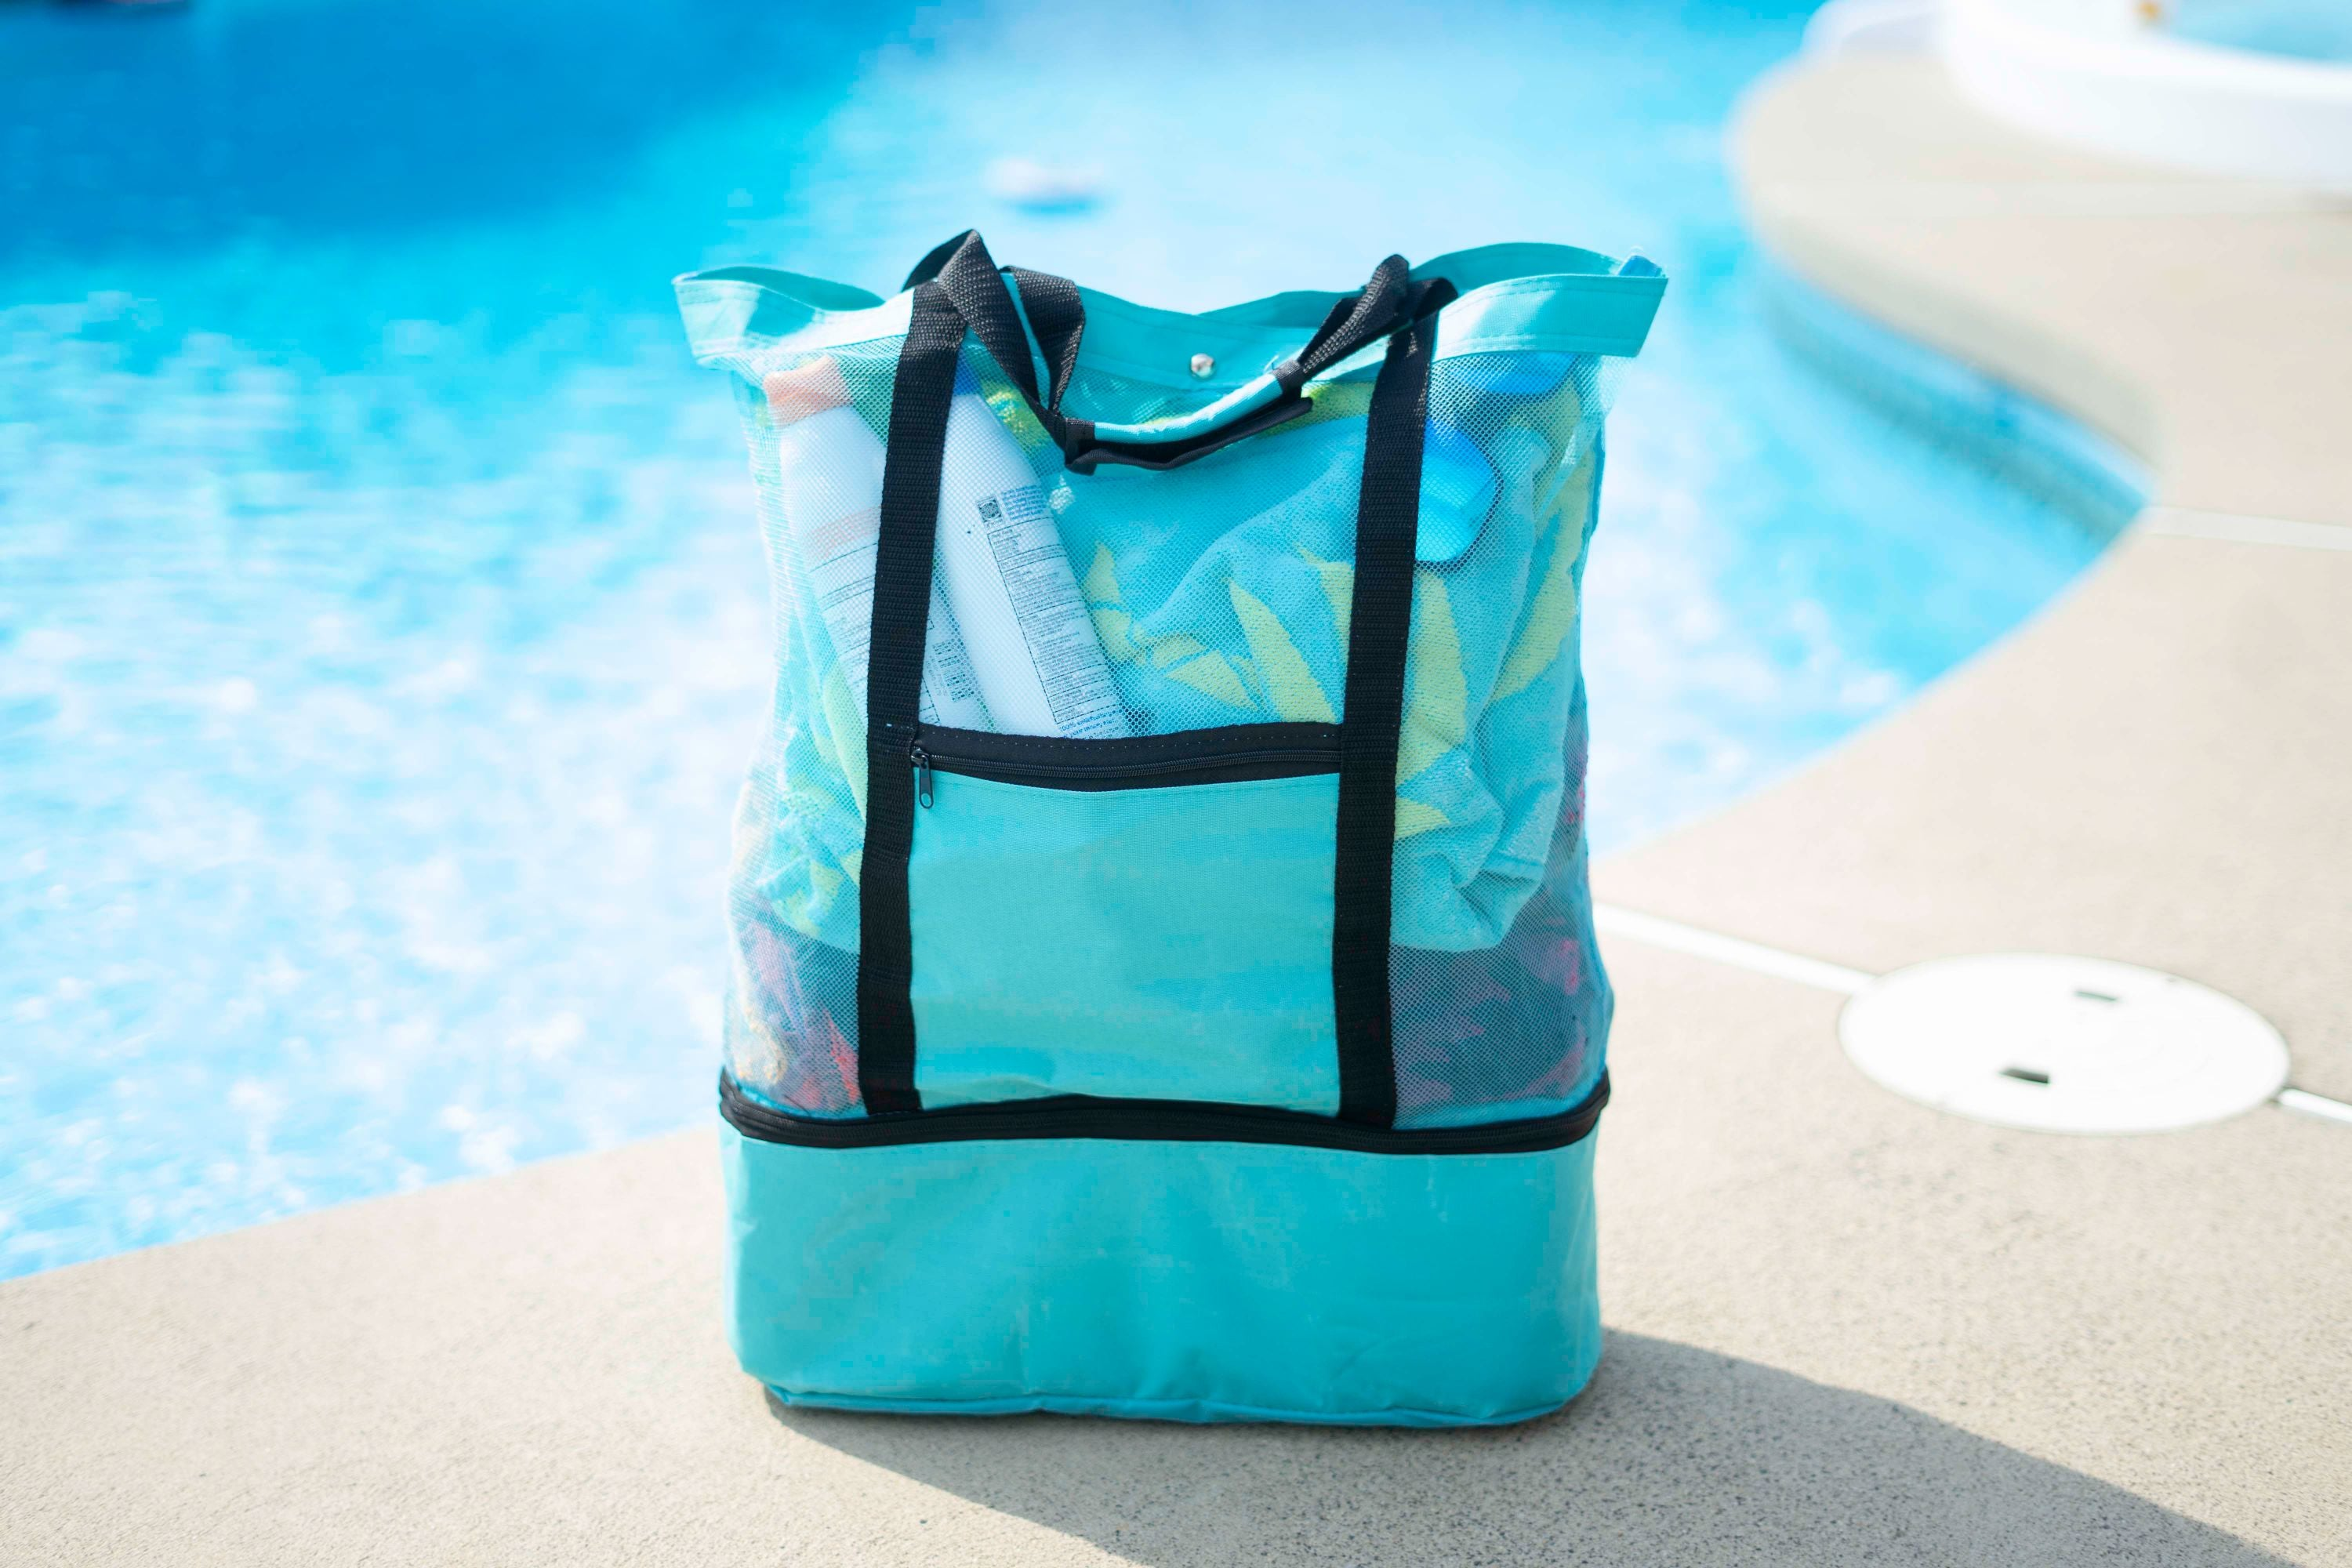 shopify-Insulated Cooler Picnic Beach Tote Bag-1